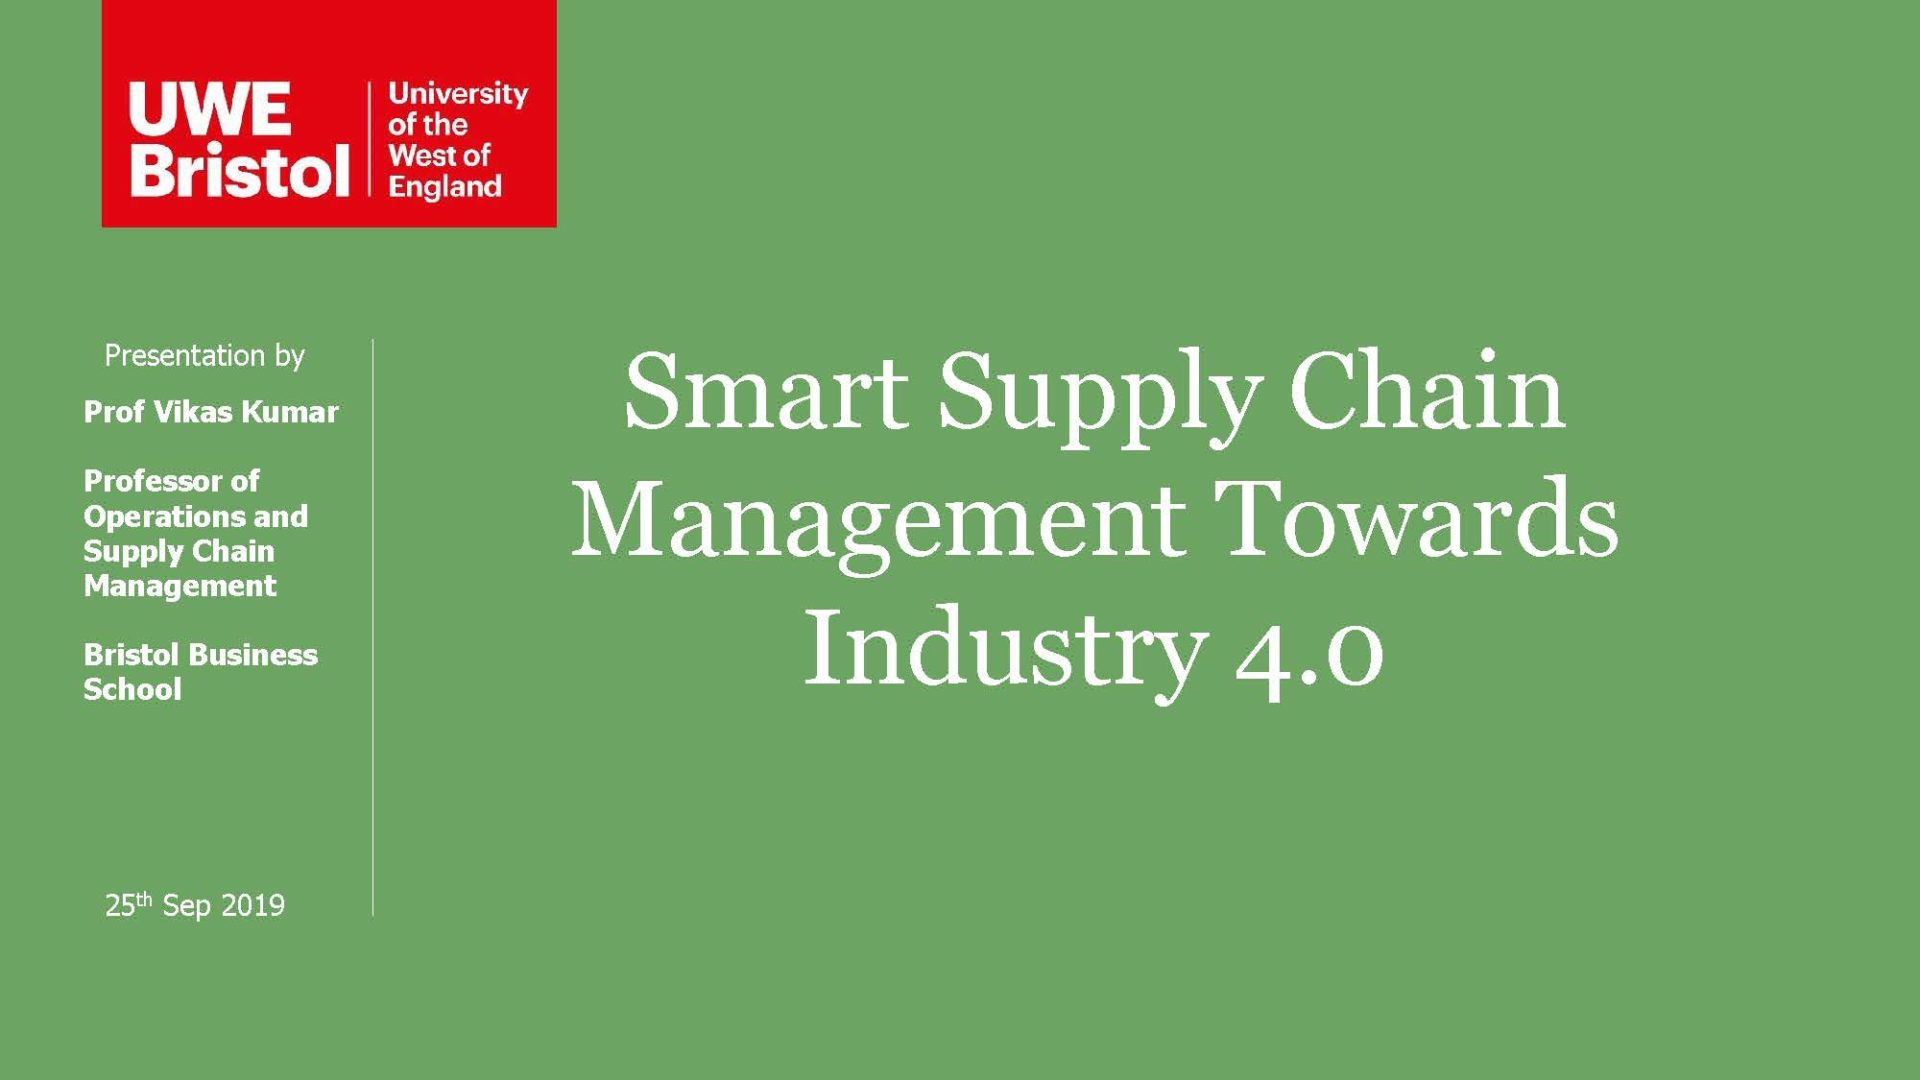 Smart Supply Chain Management Towards Industry 4.0